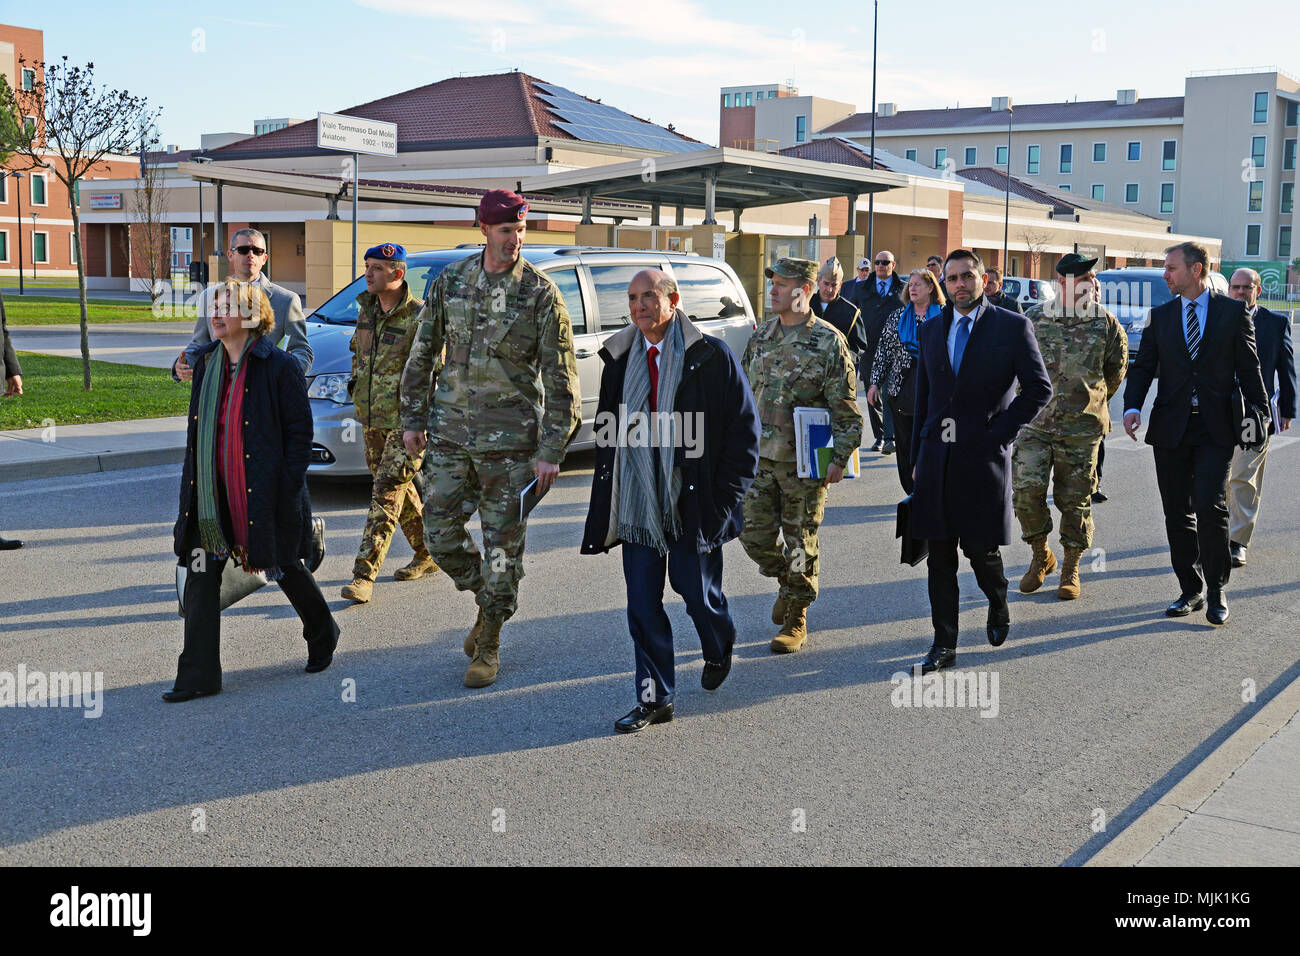 U.S. Ambassador to Italy Lewis Eisenberg visited with leaders from U.S. forces at Caserma Del Din, Vicenza, Italy, Dec. 5, 2017. He met with Col. James Bartholomees, 173rd Airborne commander, Col. Howard C.  Kirk, U.S. Army Africa chief of staff; Col. Erik M. Berdy, U.S. Army Garrison Italy commander, Col. Richard D. Conkle, 207th Military Intelligence Brigade commander and Col. Umberto D'Andria, Italian Base Commander Caserma Ederle of Vicenza. (U.S. Army photo by Paolo Bovo) Stock Photo